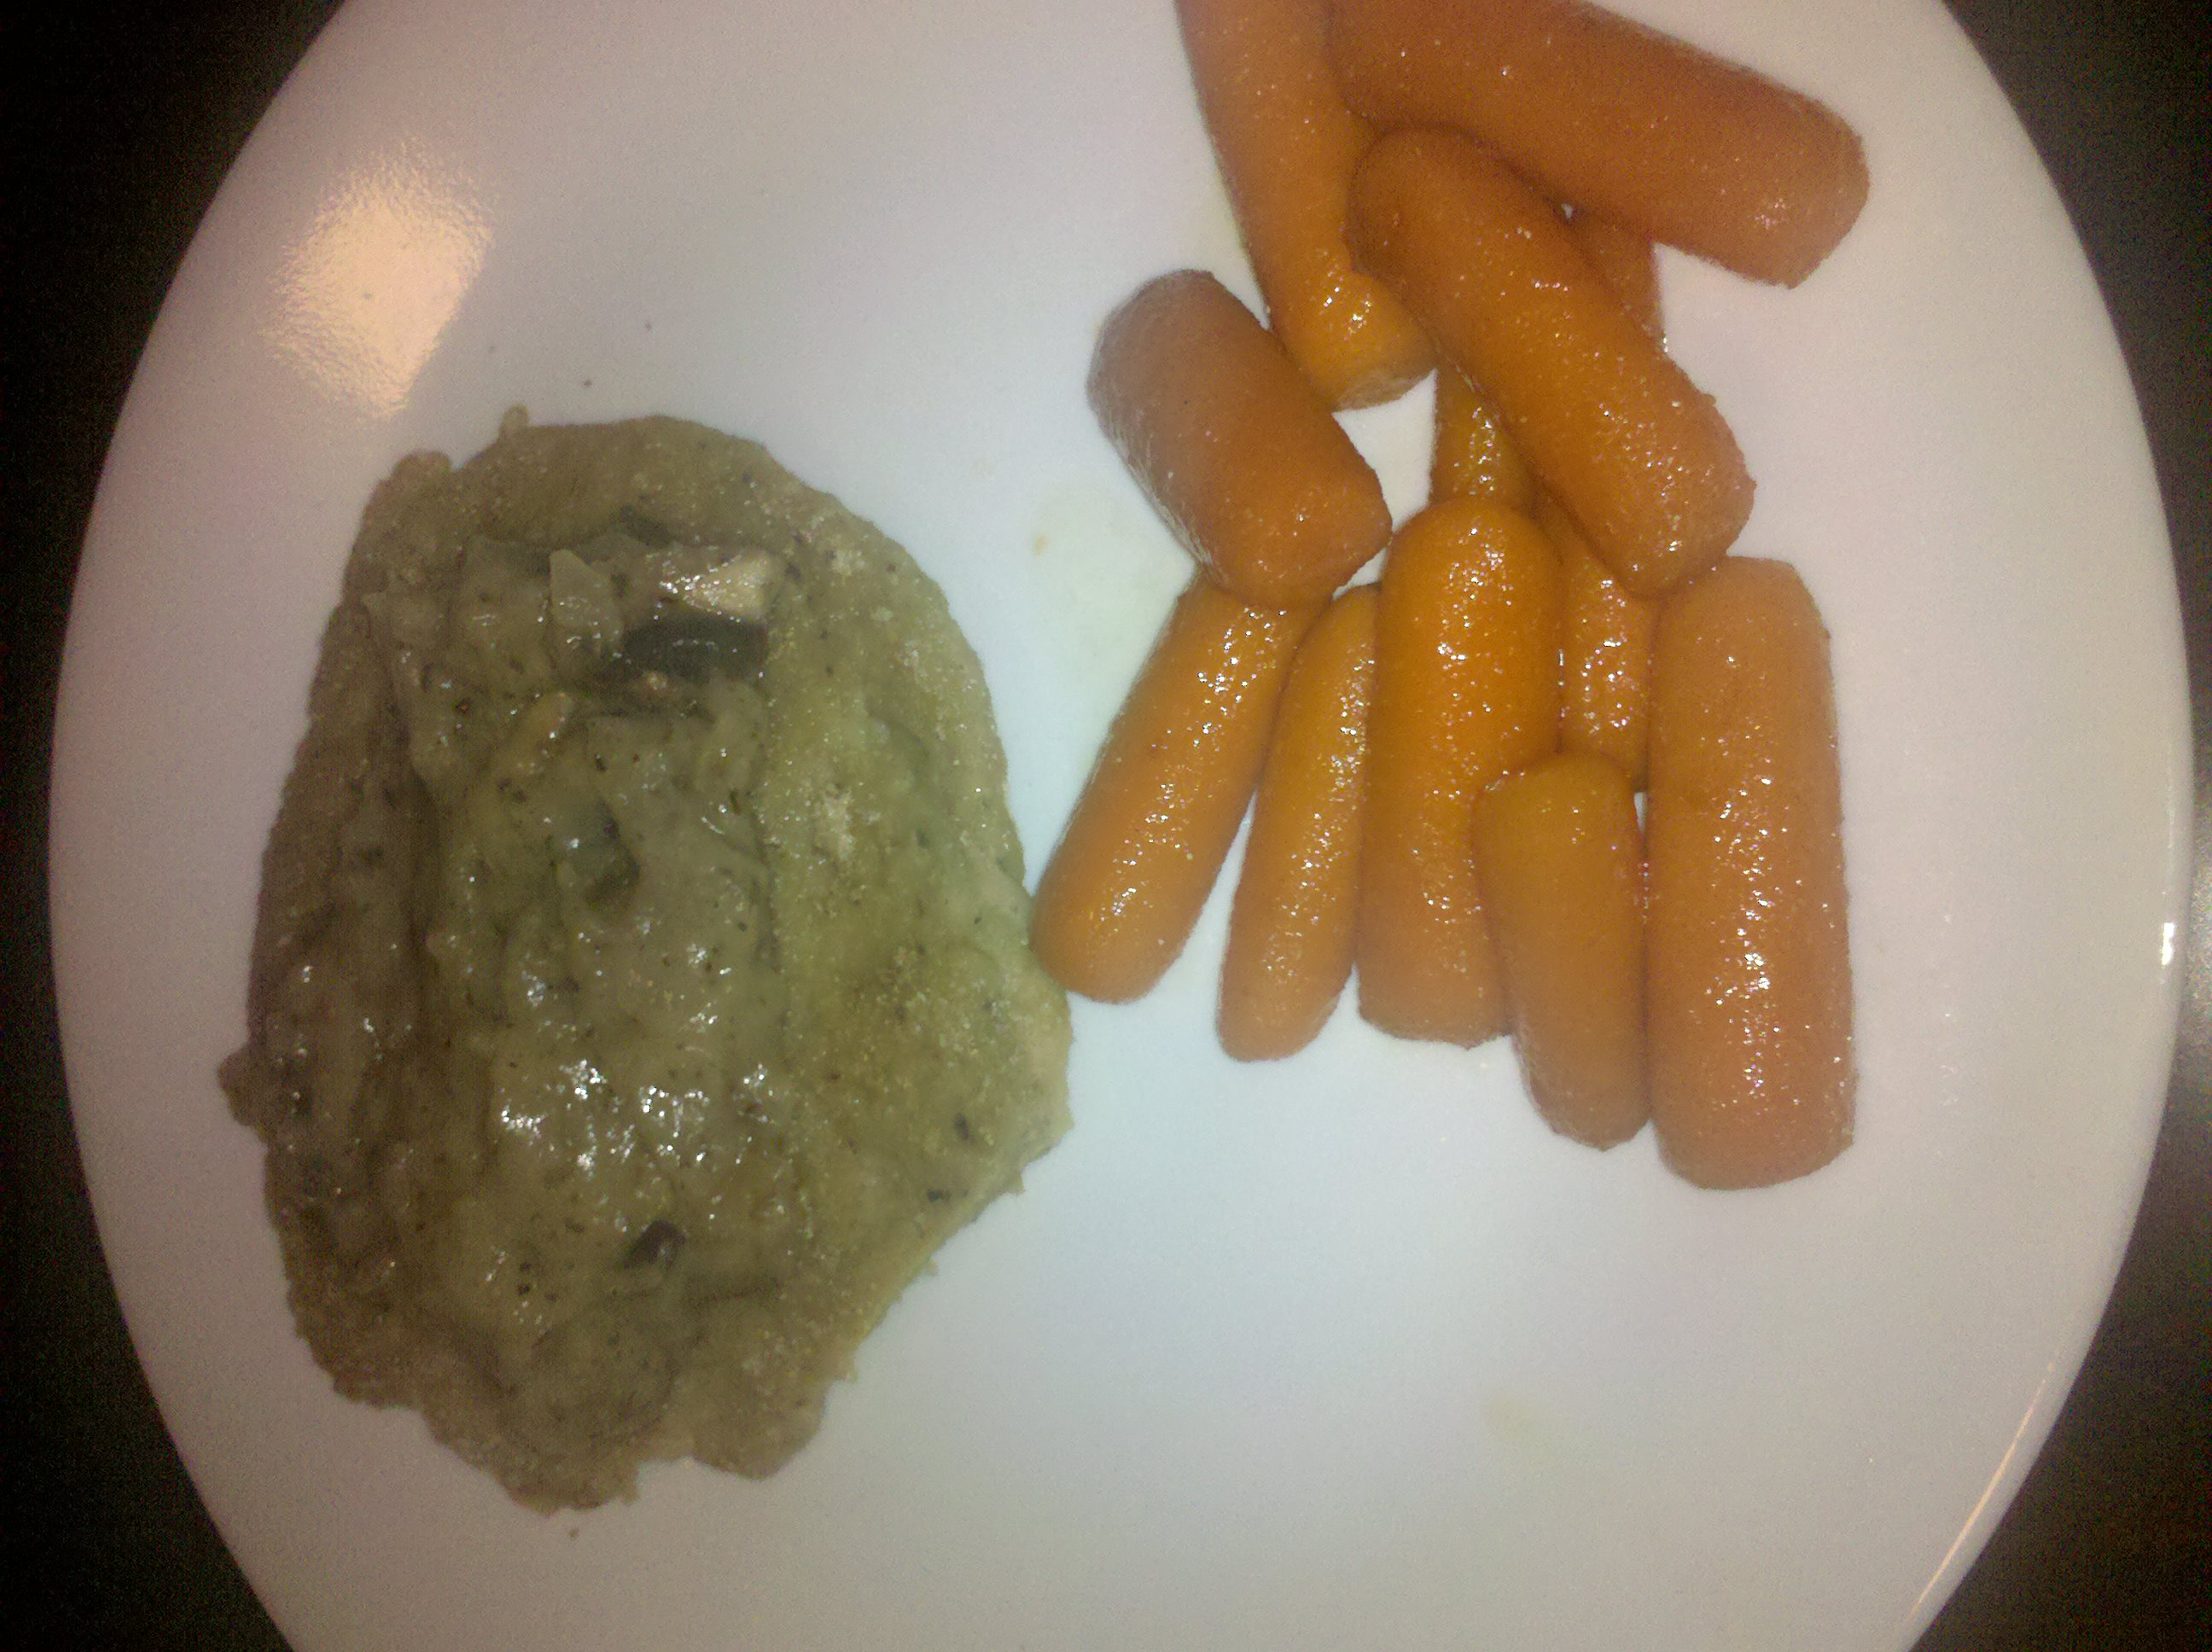 Houston tx :: homemade seitan chops with vegan savory gravy, carrots sauteed in vegan margarine and sprinkled with turbinado sugar